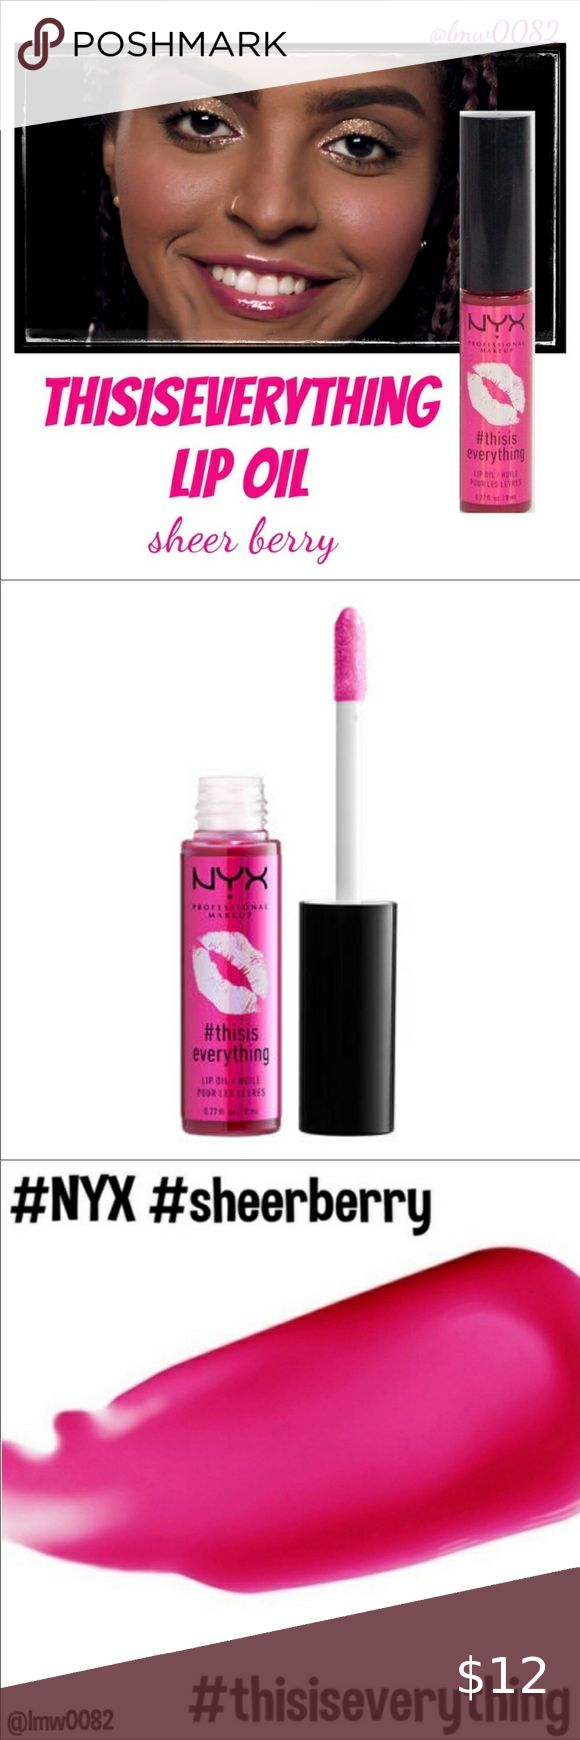 Find Your Perfect Natural Lipstick - 100% PURE®